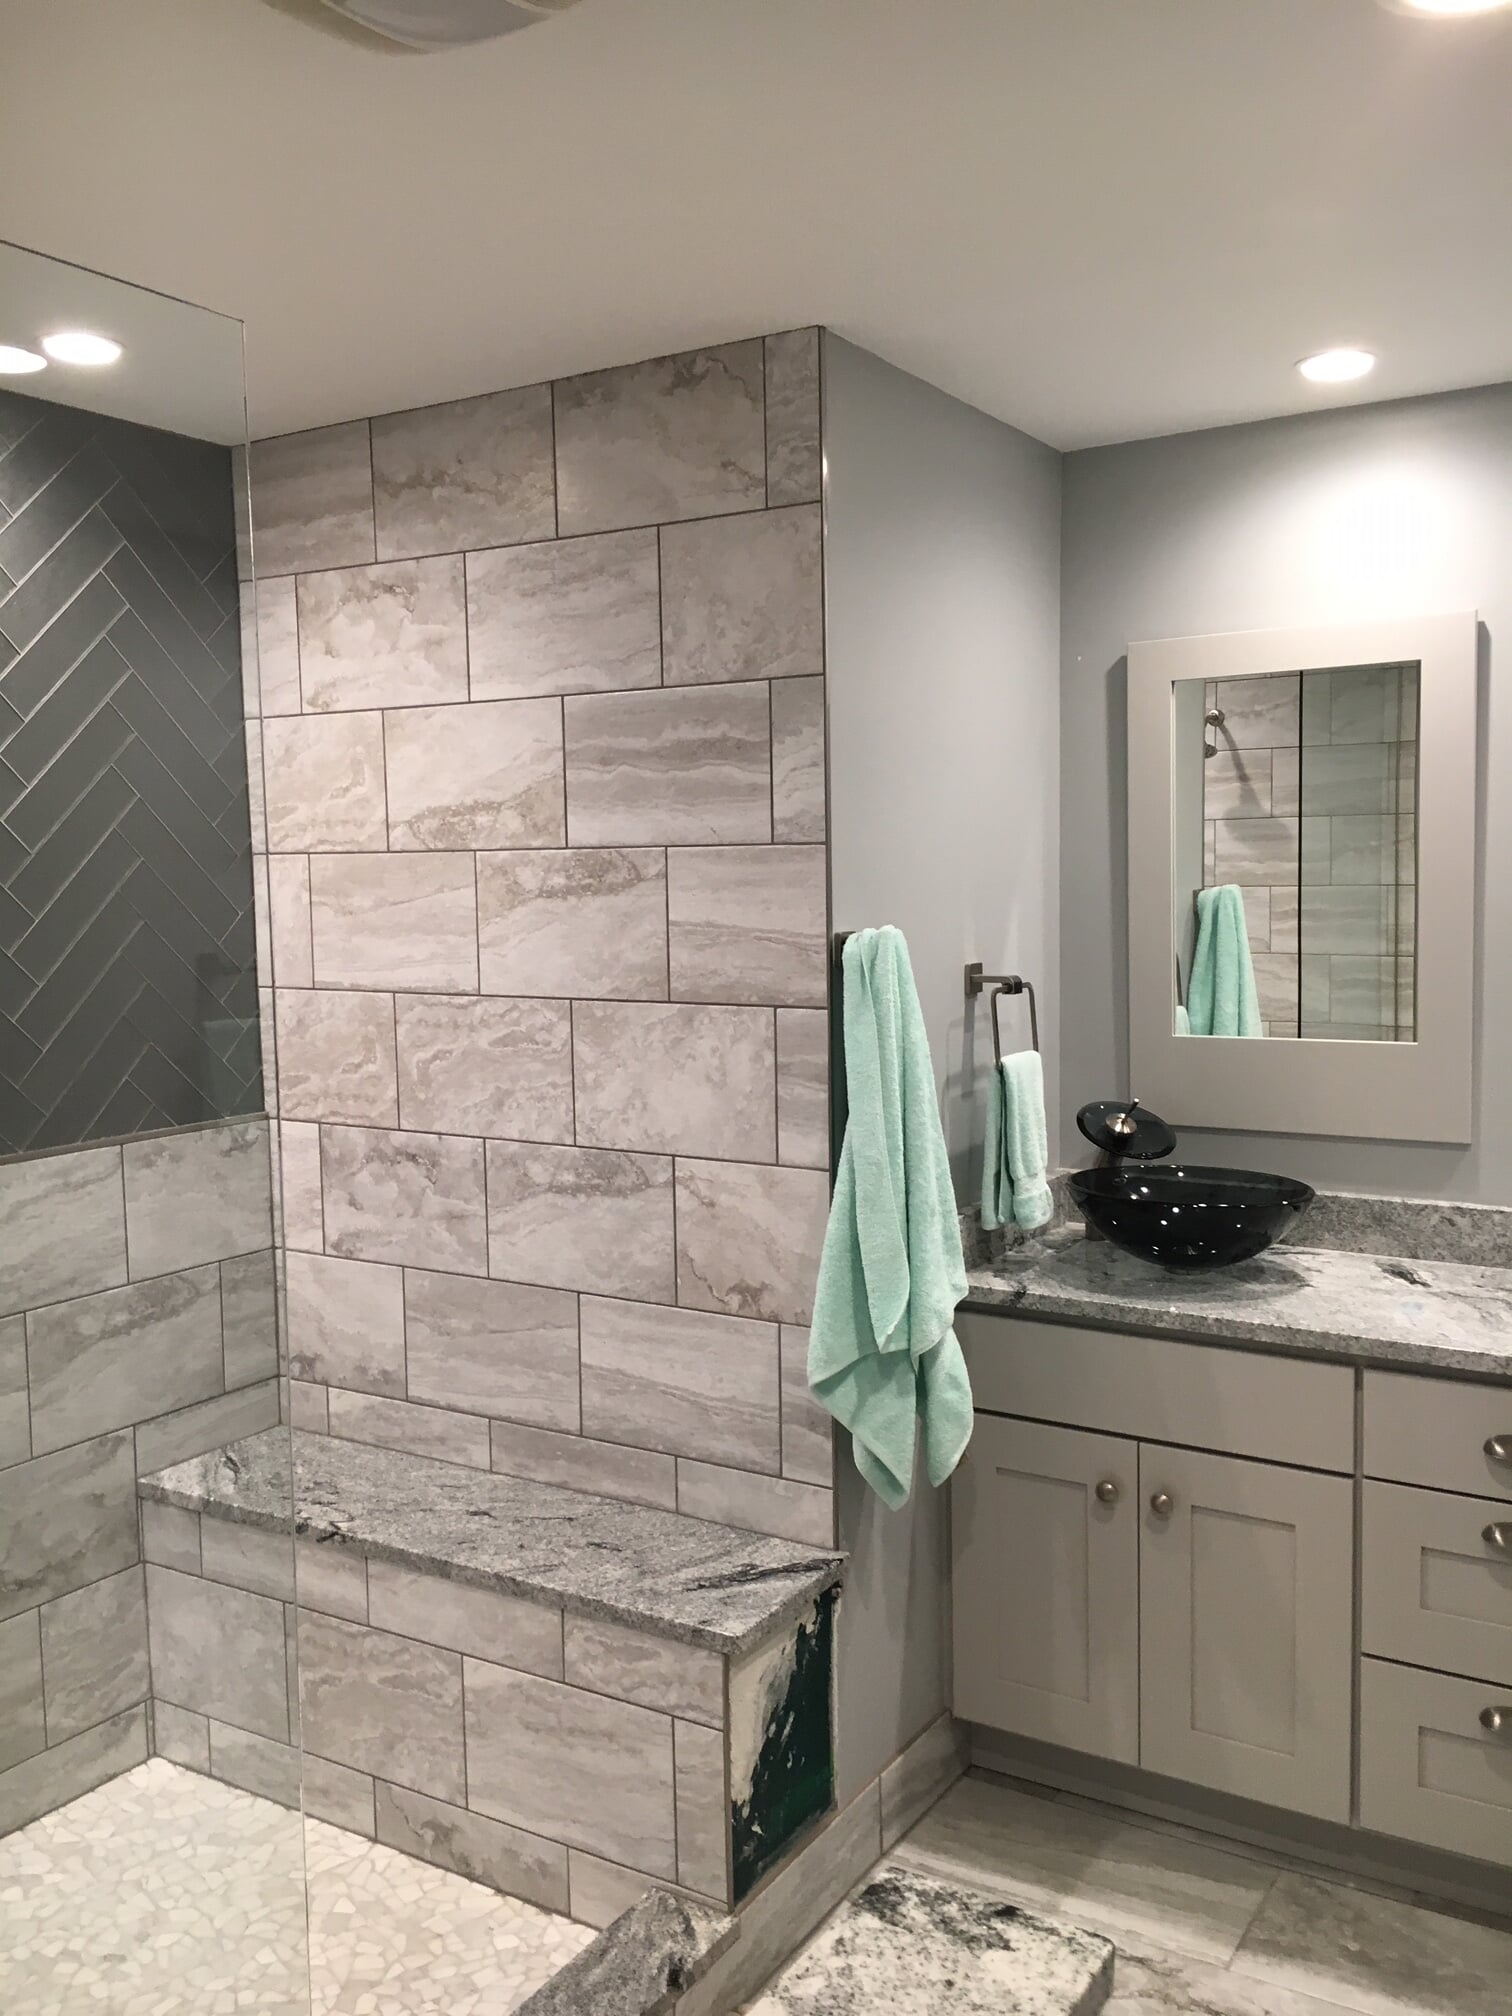 Natural stone bathroom remodel from Finishers Unlimited in Monroe, MI